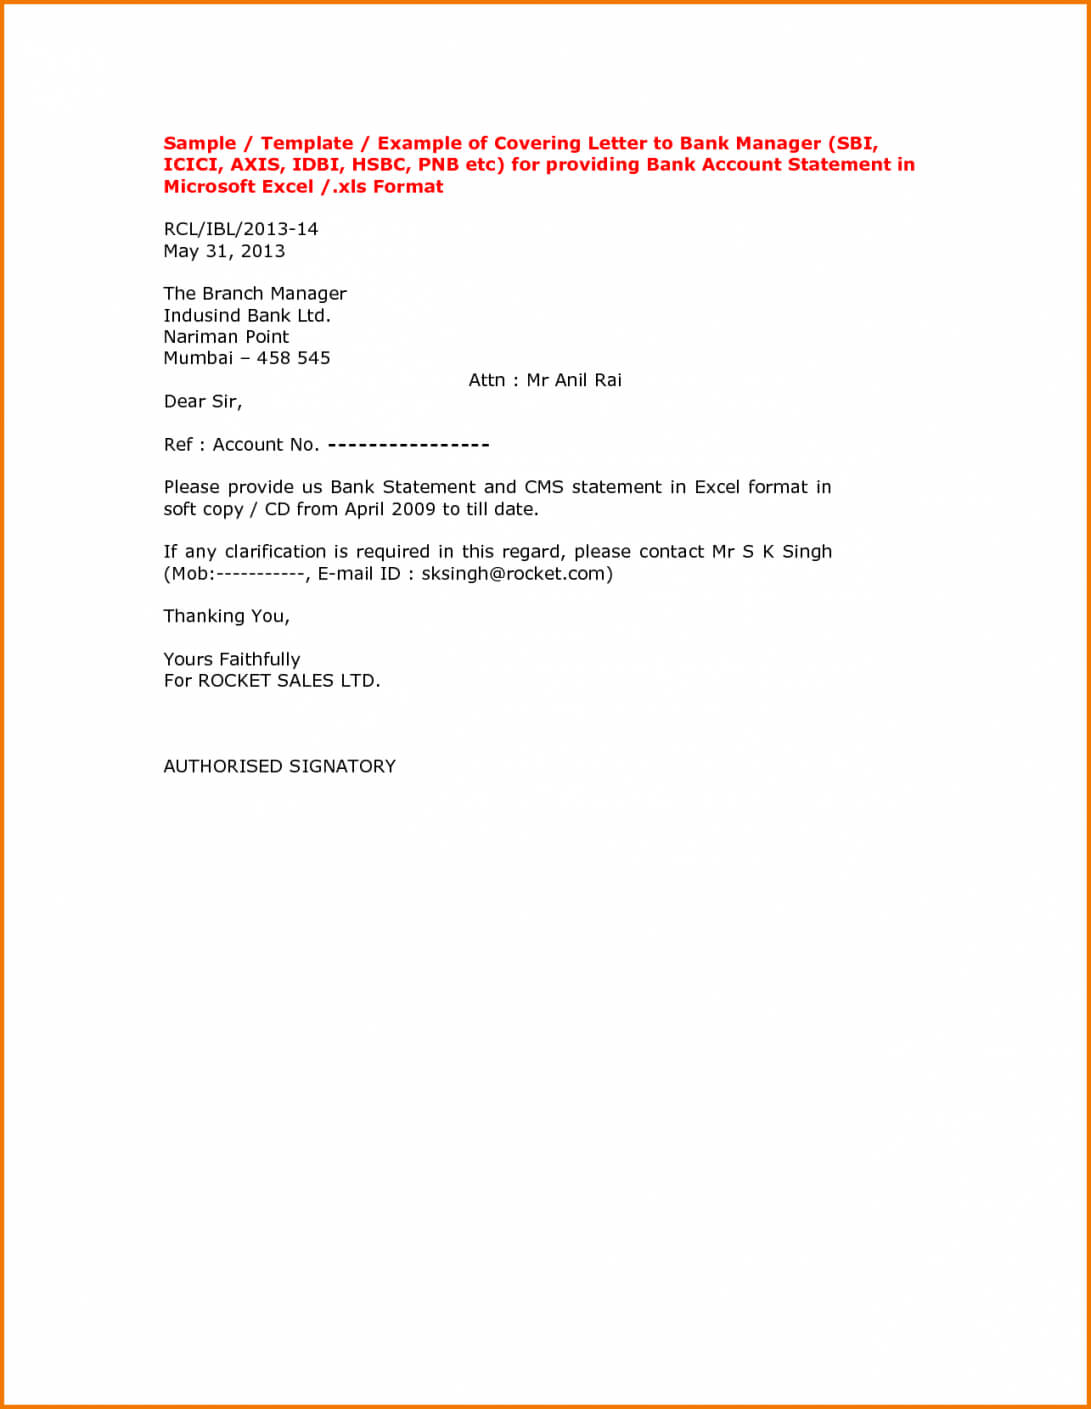 048 Microsoft Word Certificate Of Completion Template Free Pertaining To Certificate Template For Project Completion